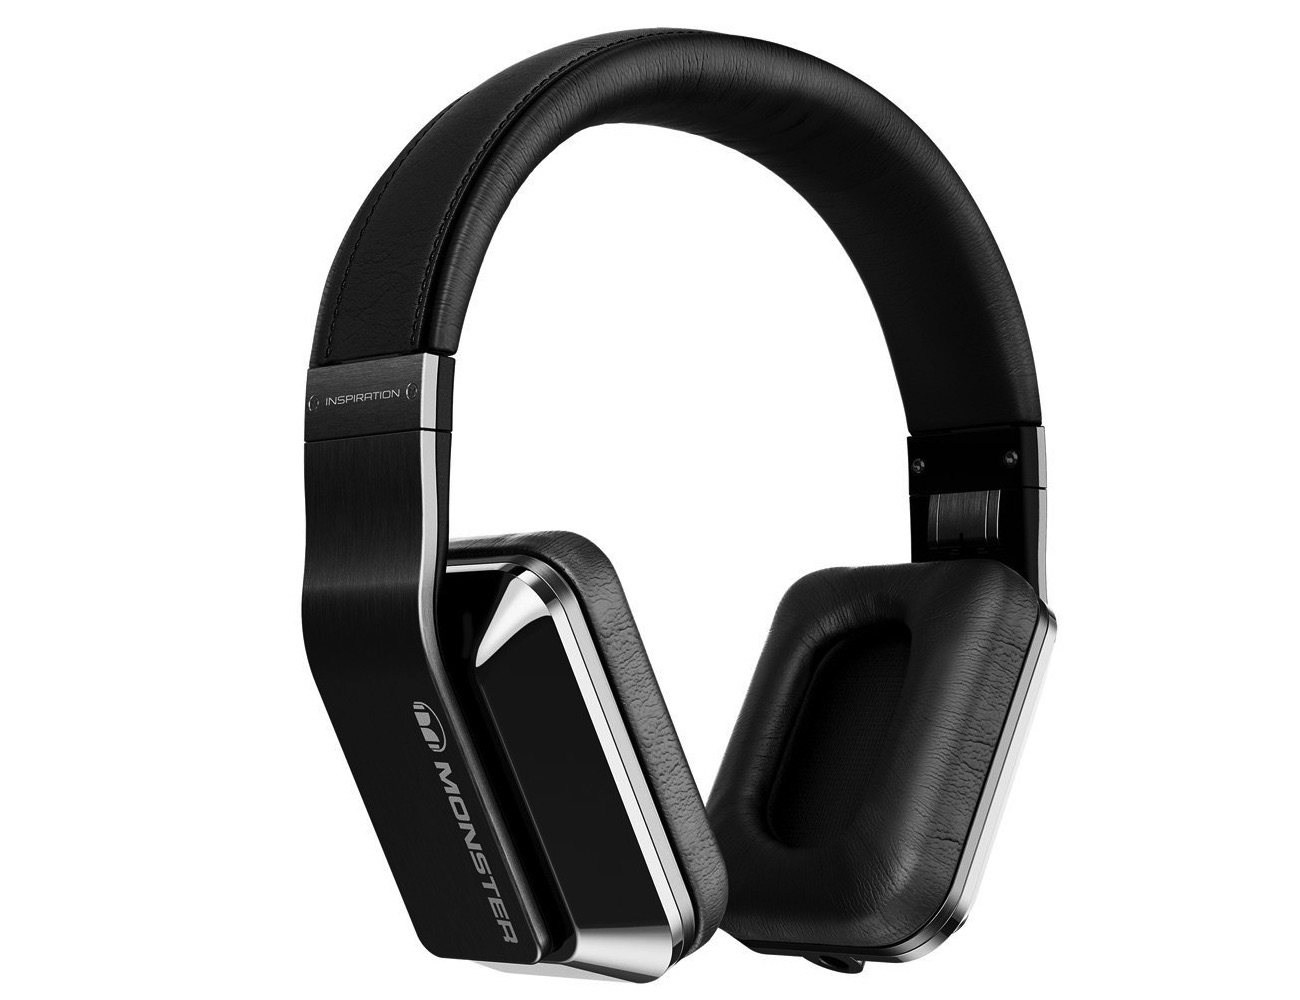 monster-inspiration-active-noise-canceling-over-ear-headphones-03